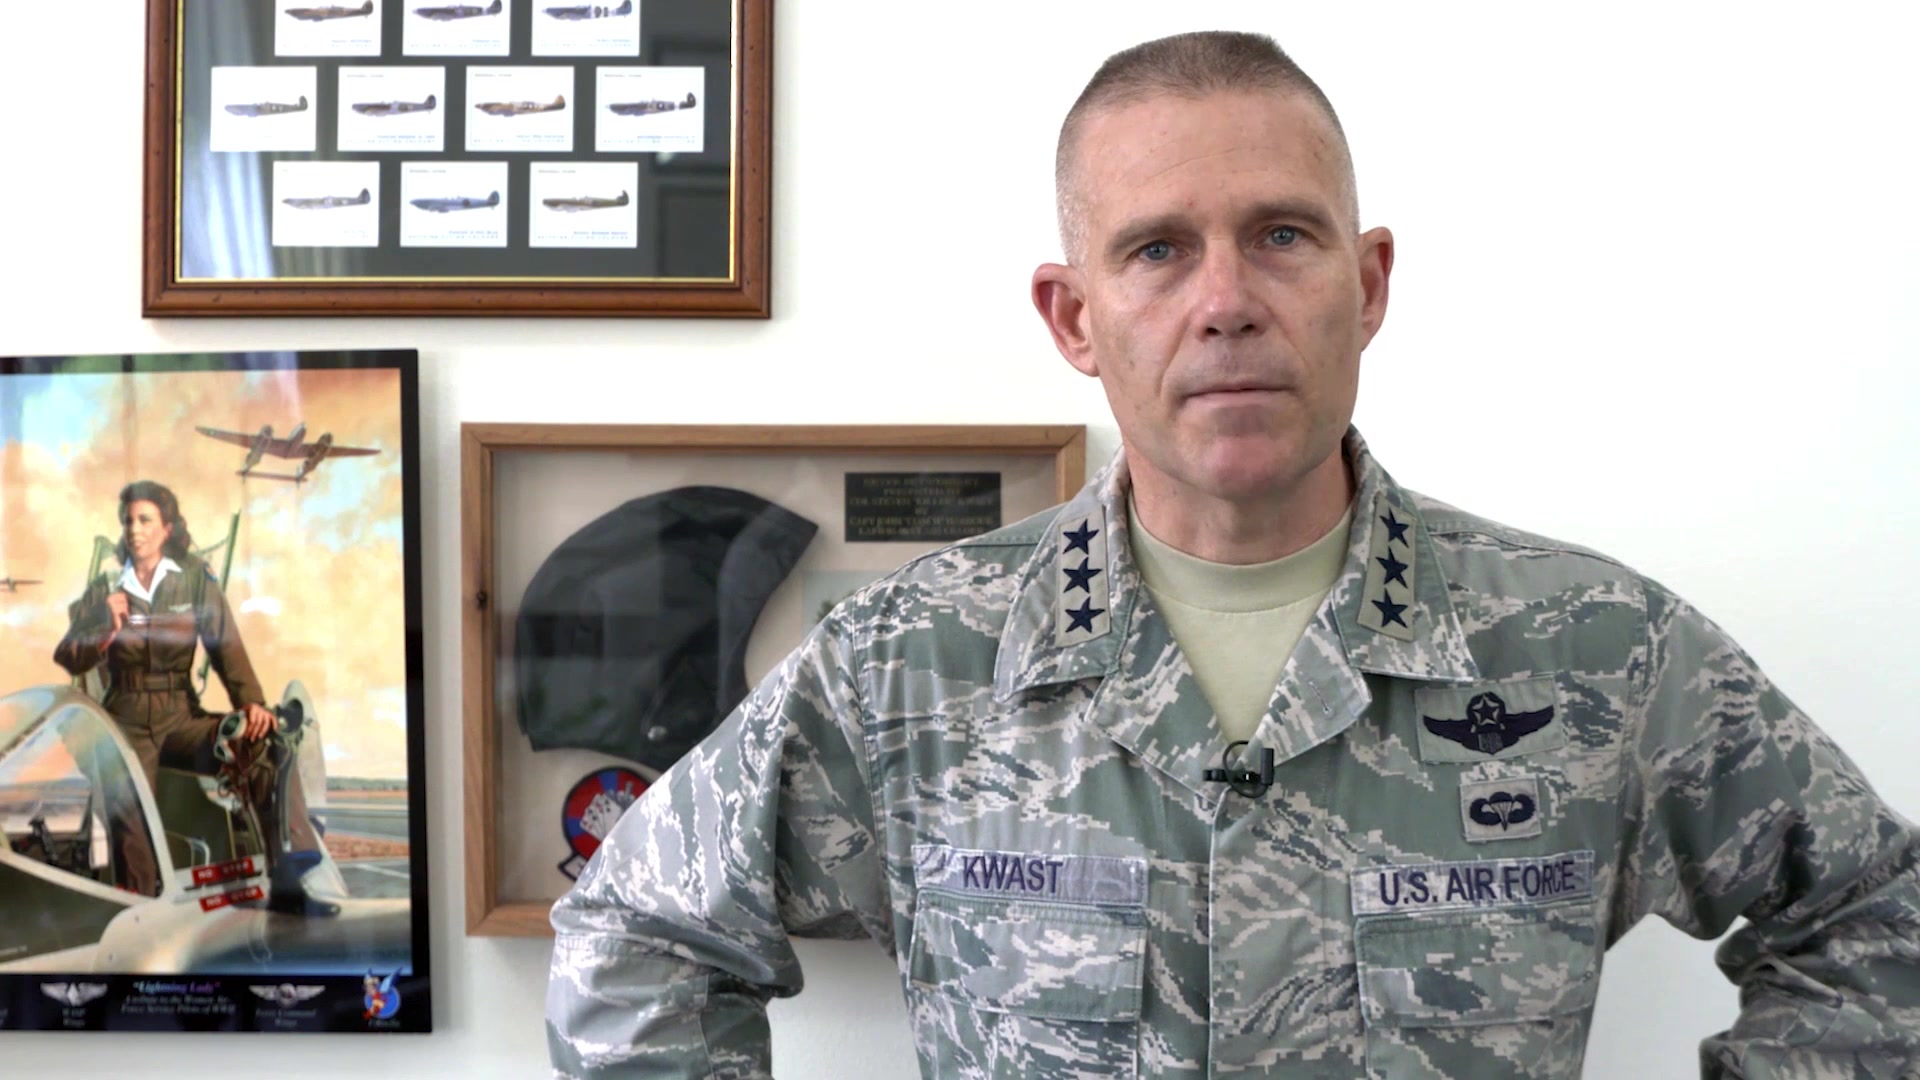 """""""This deep and abiding part of who we are..this compassion for one another, is the glue that binds us together when times are rough.""""   Check out the the 4th & final Commander's Intent video from Lt. Gen. Steve Kwast on behaviors consistent with the art of war & with winning. The topic today: compassion."""